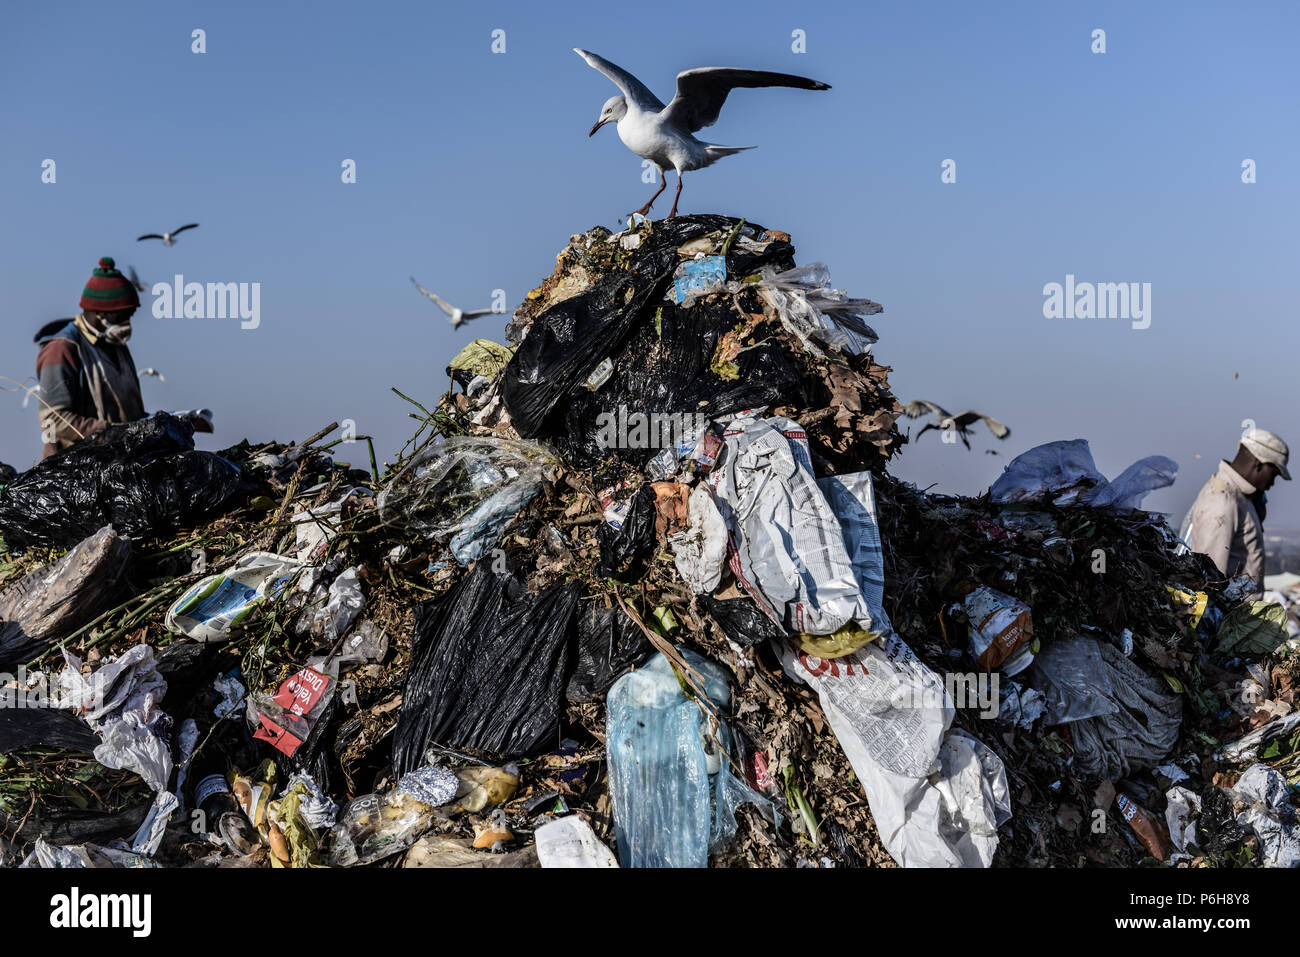 Pickers sorting through the Robinson Deep landfill in the South African commercial capital of Johannesburg - Stock Image